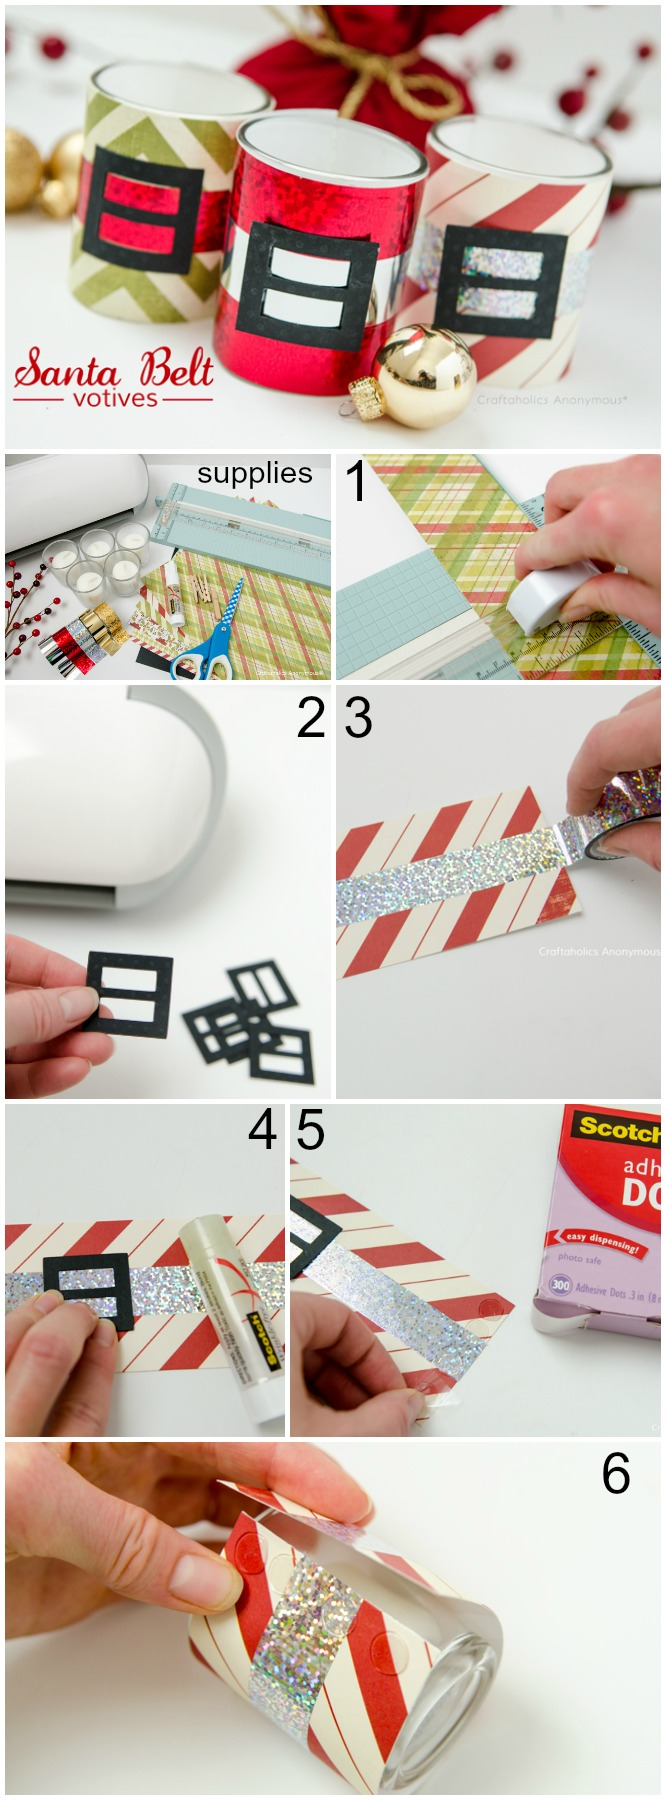 How to make santa belt votives candles. These would be awesome for Christmas party favors or small handmade gifts.